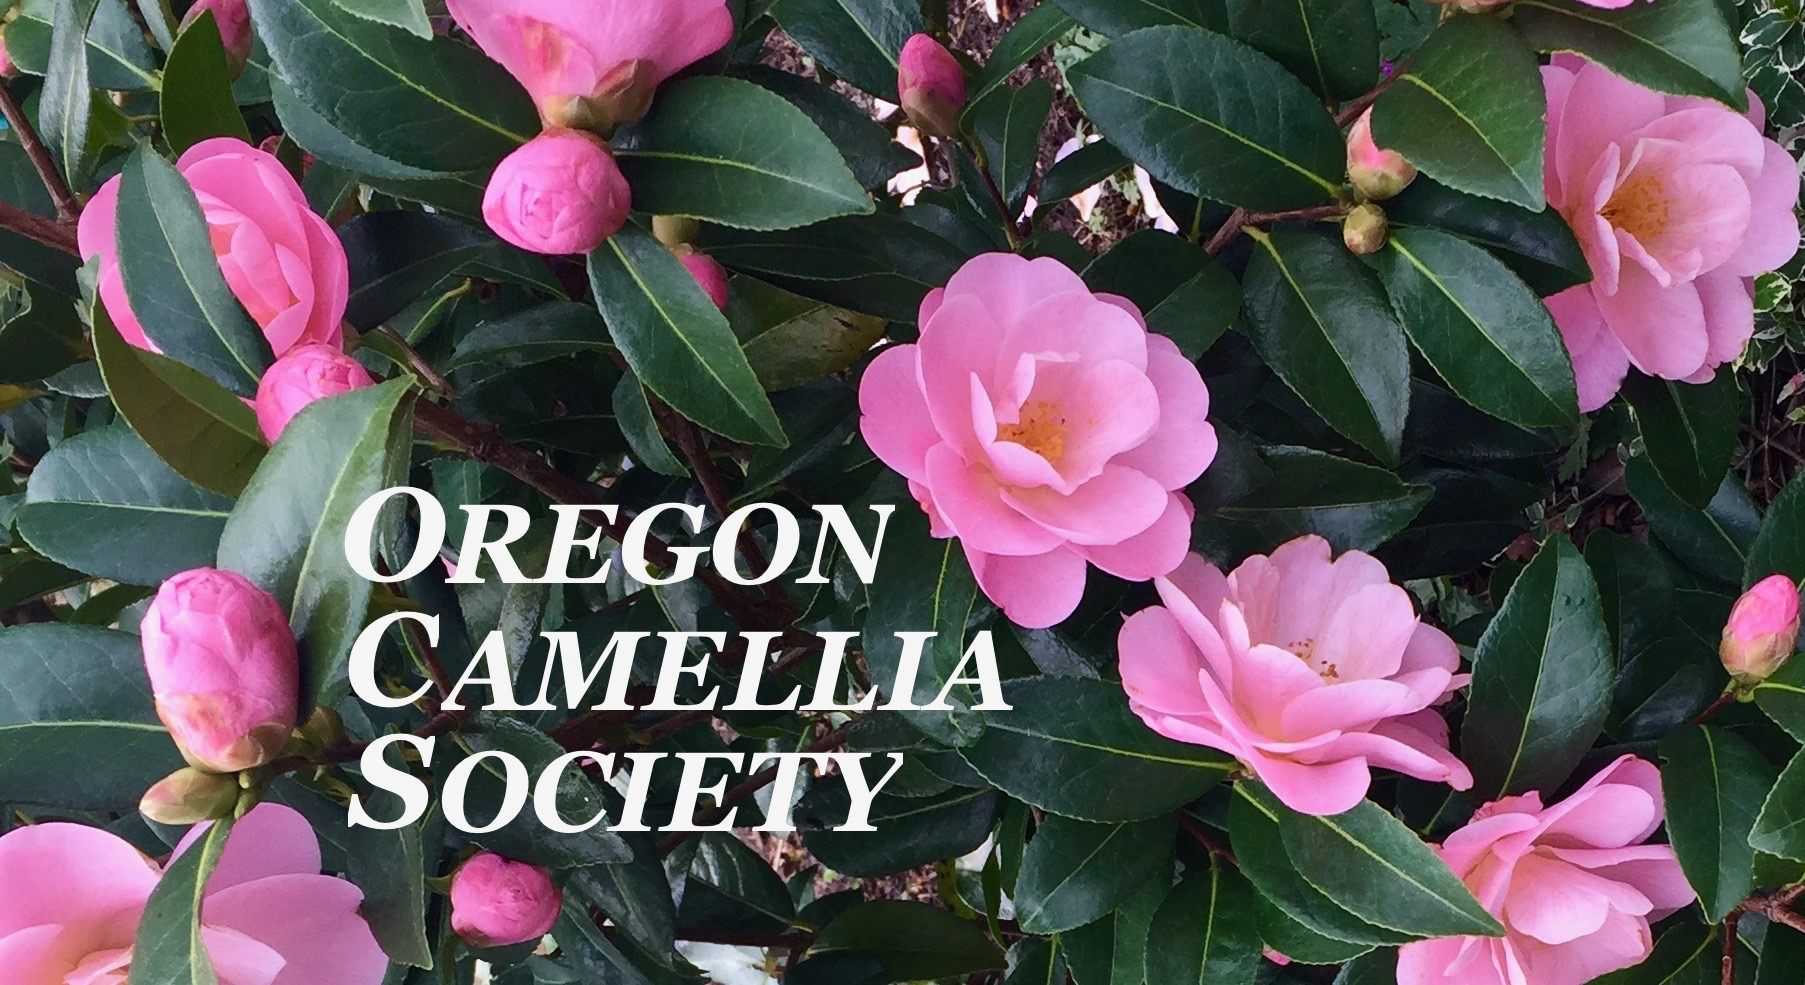 oregoncamelliasocietylogo.jpg